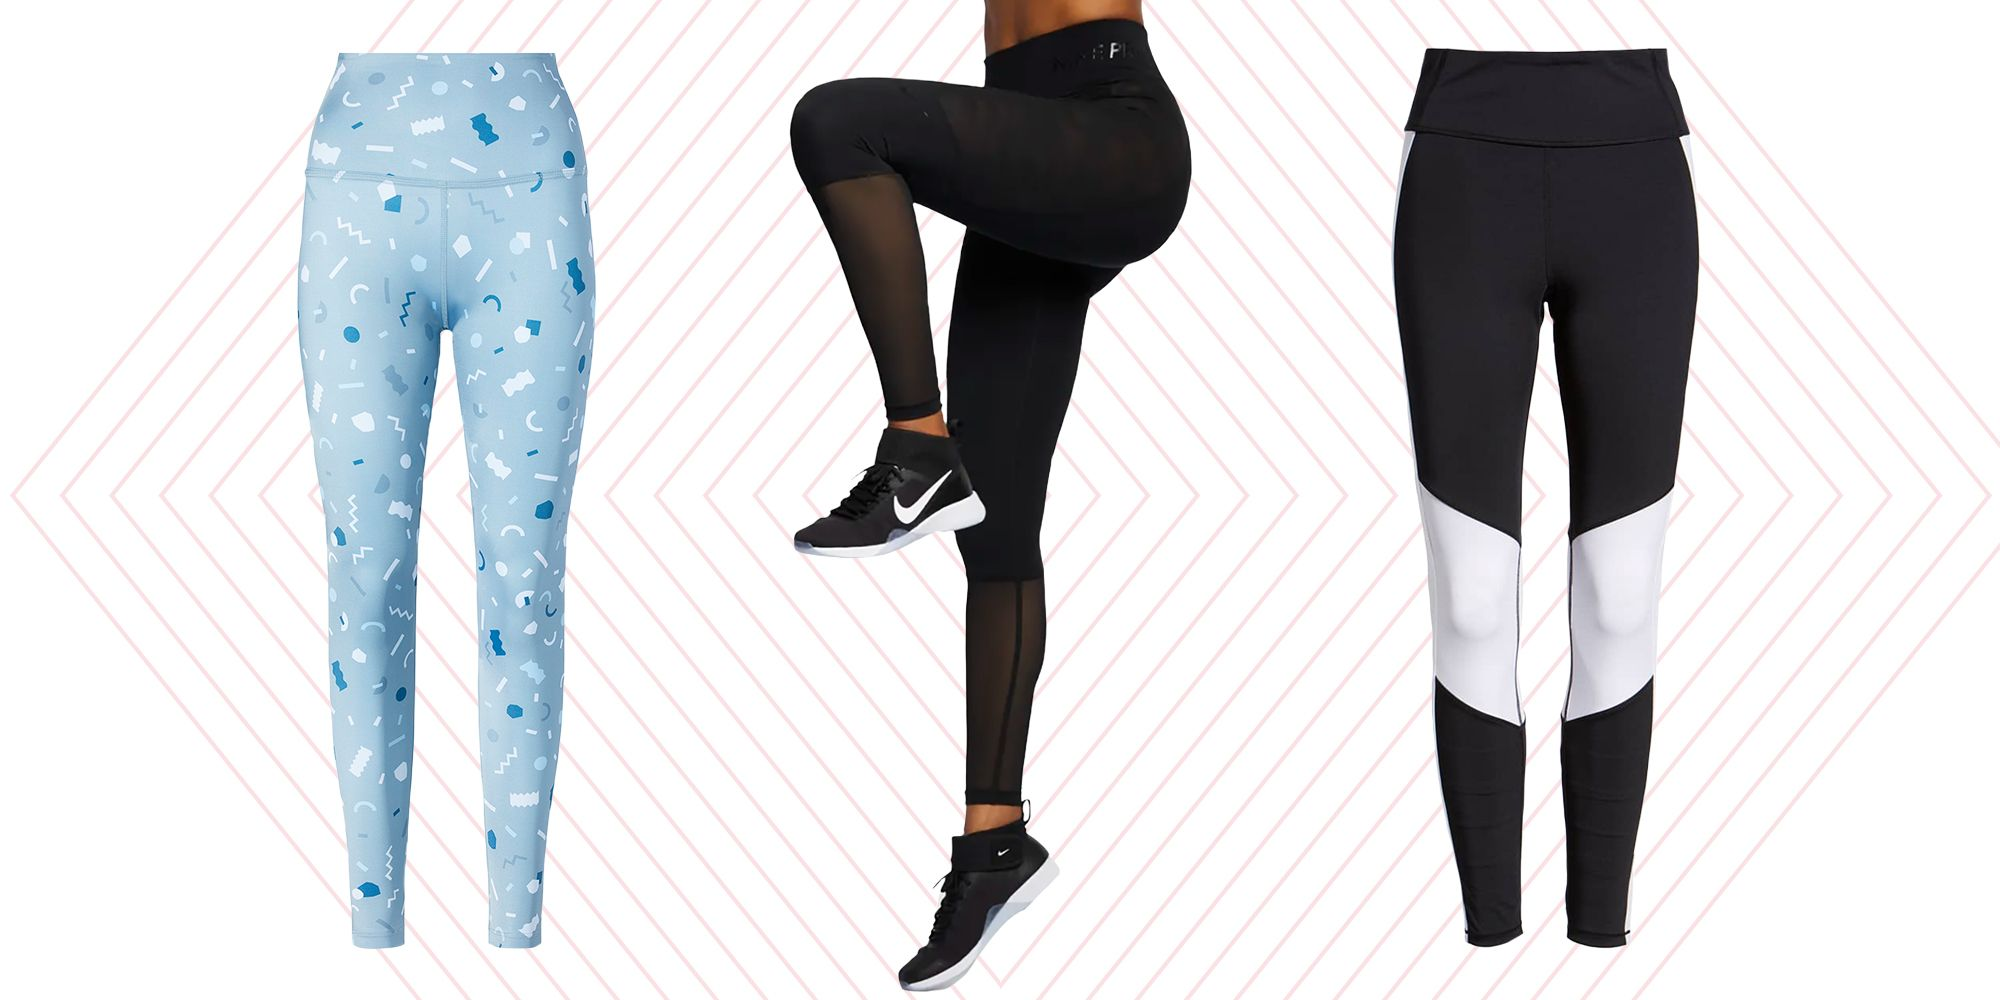 eaf12ebeddade The 10 Best Workout Leggings to Try in 2019